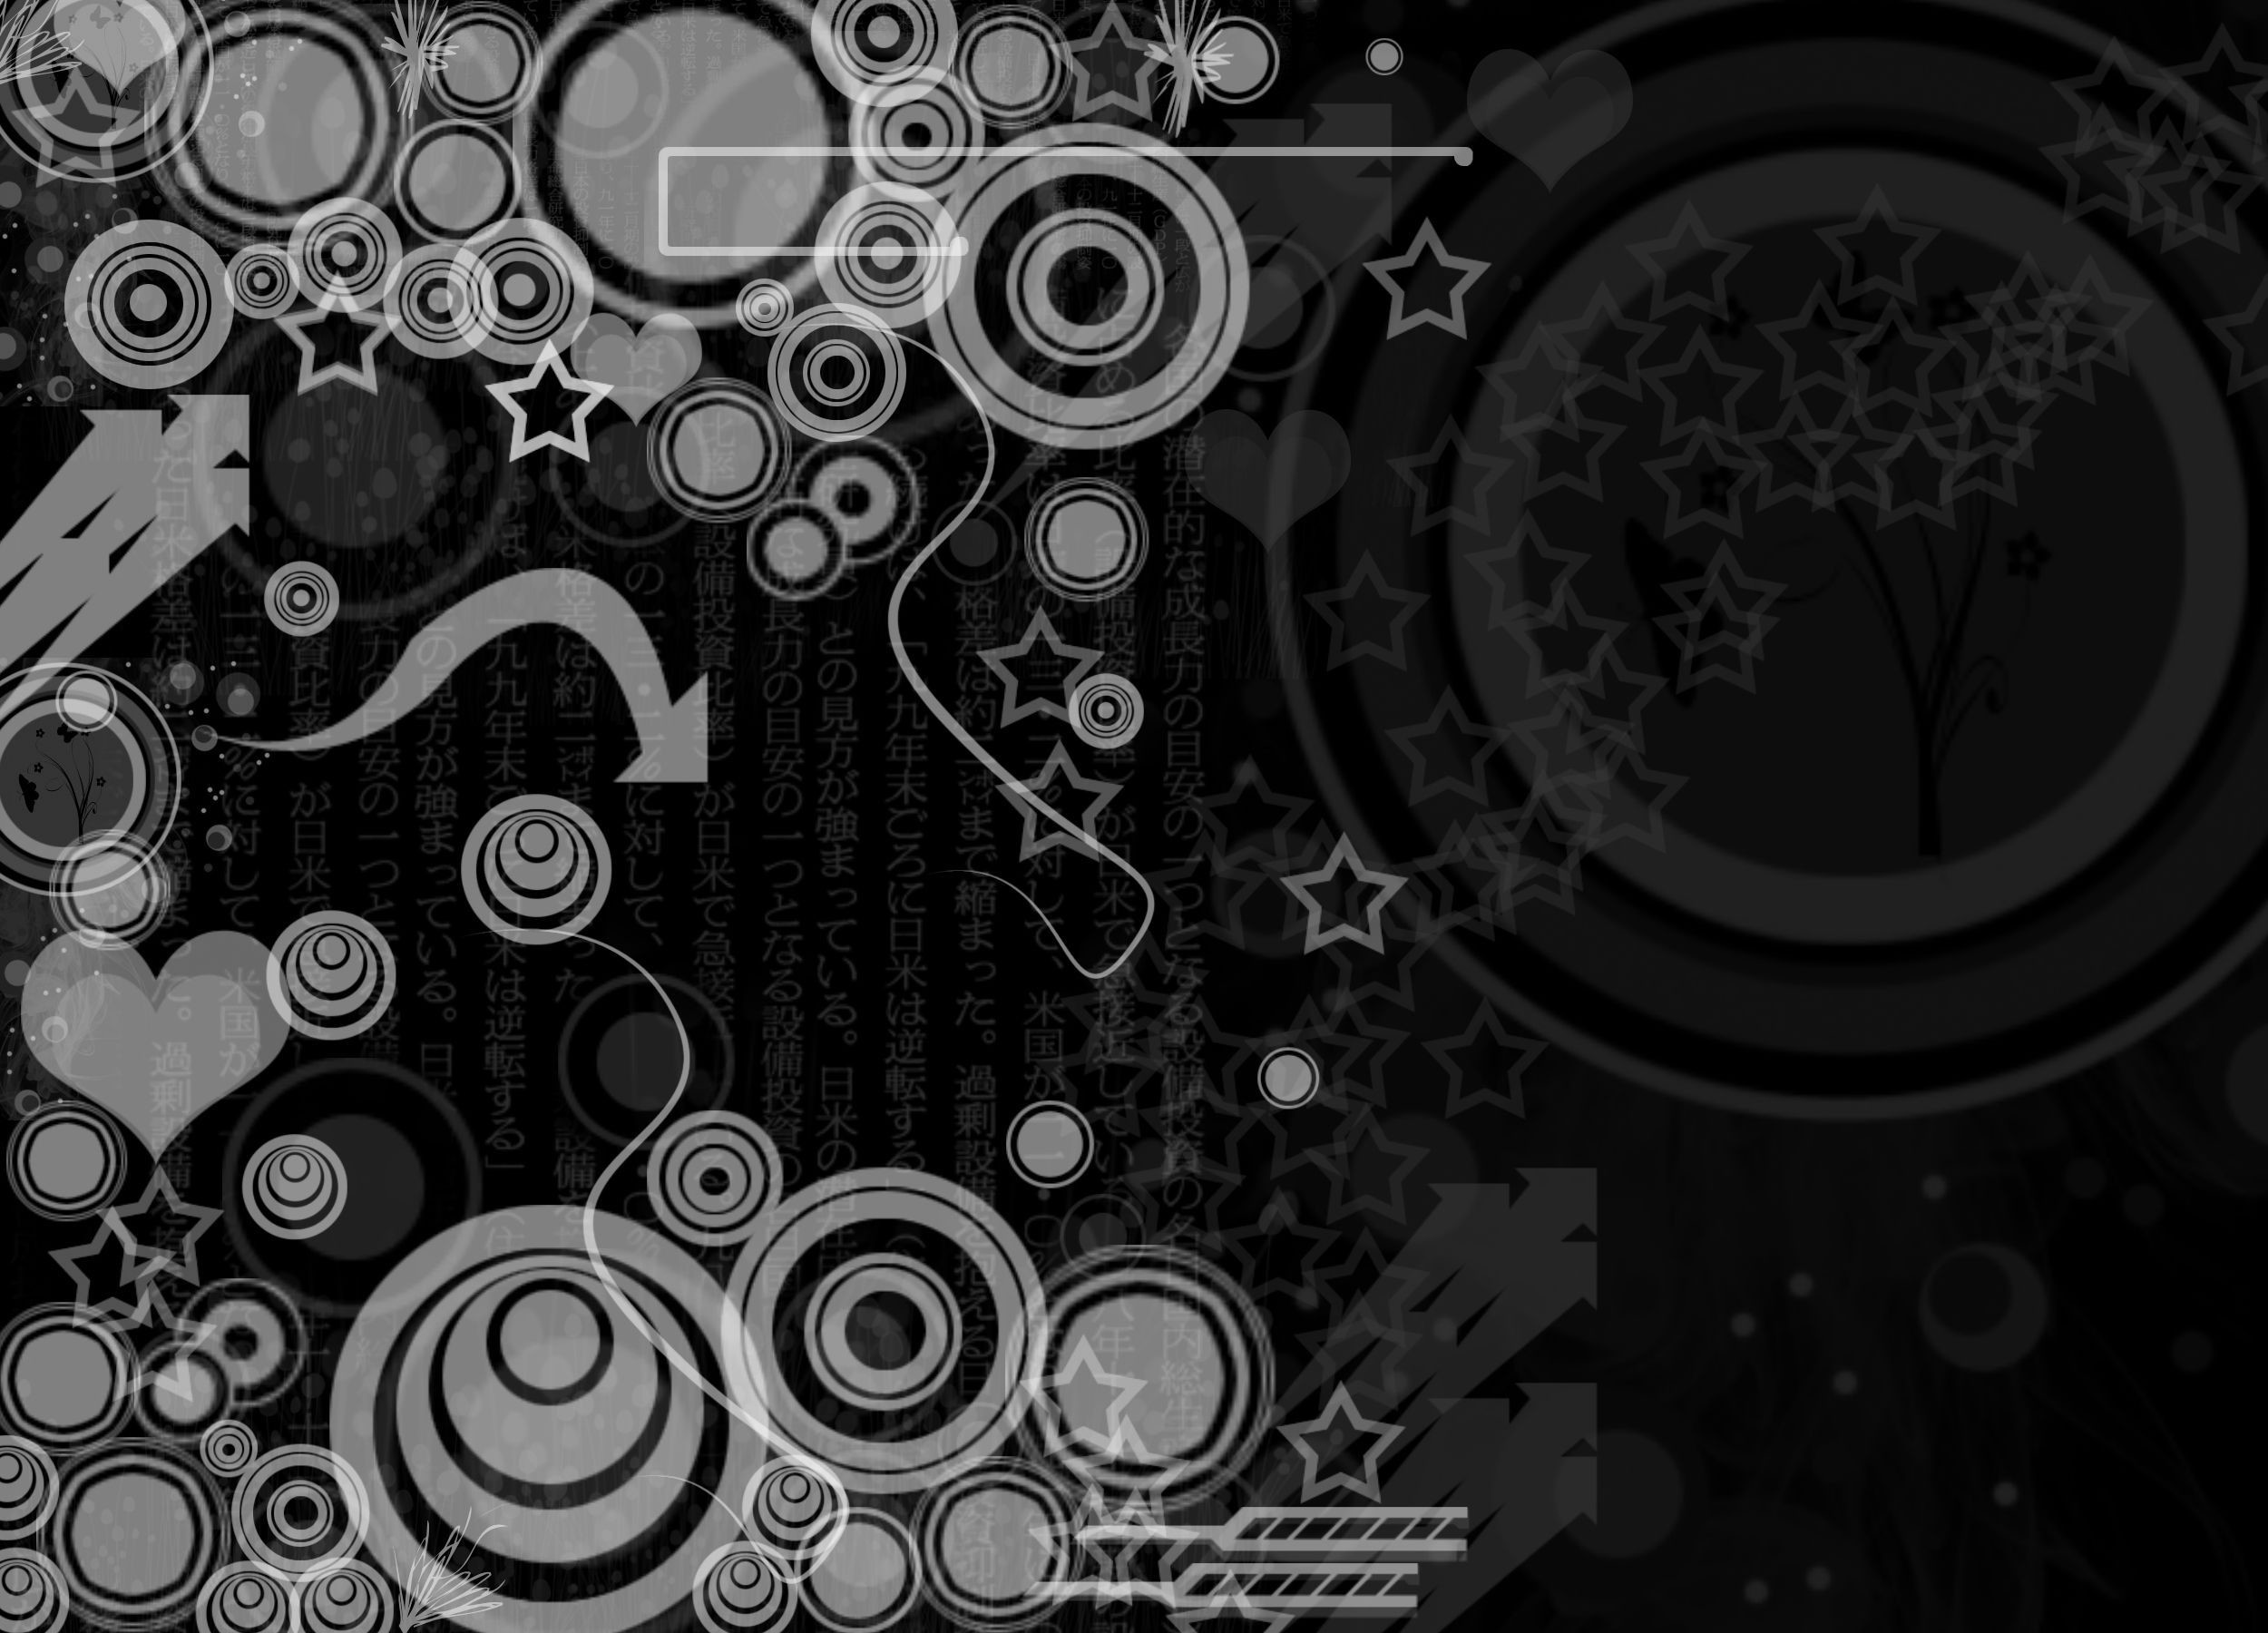 Res: 2500x1800, Download Black And White Design Wallpaper | Full HD Wallpapers